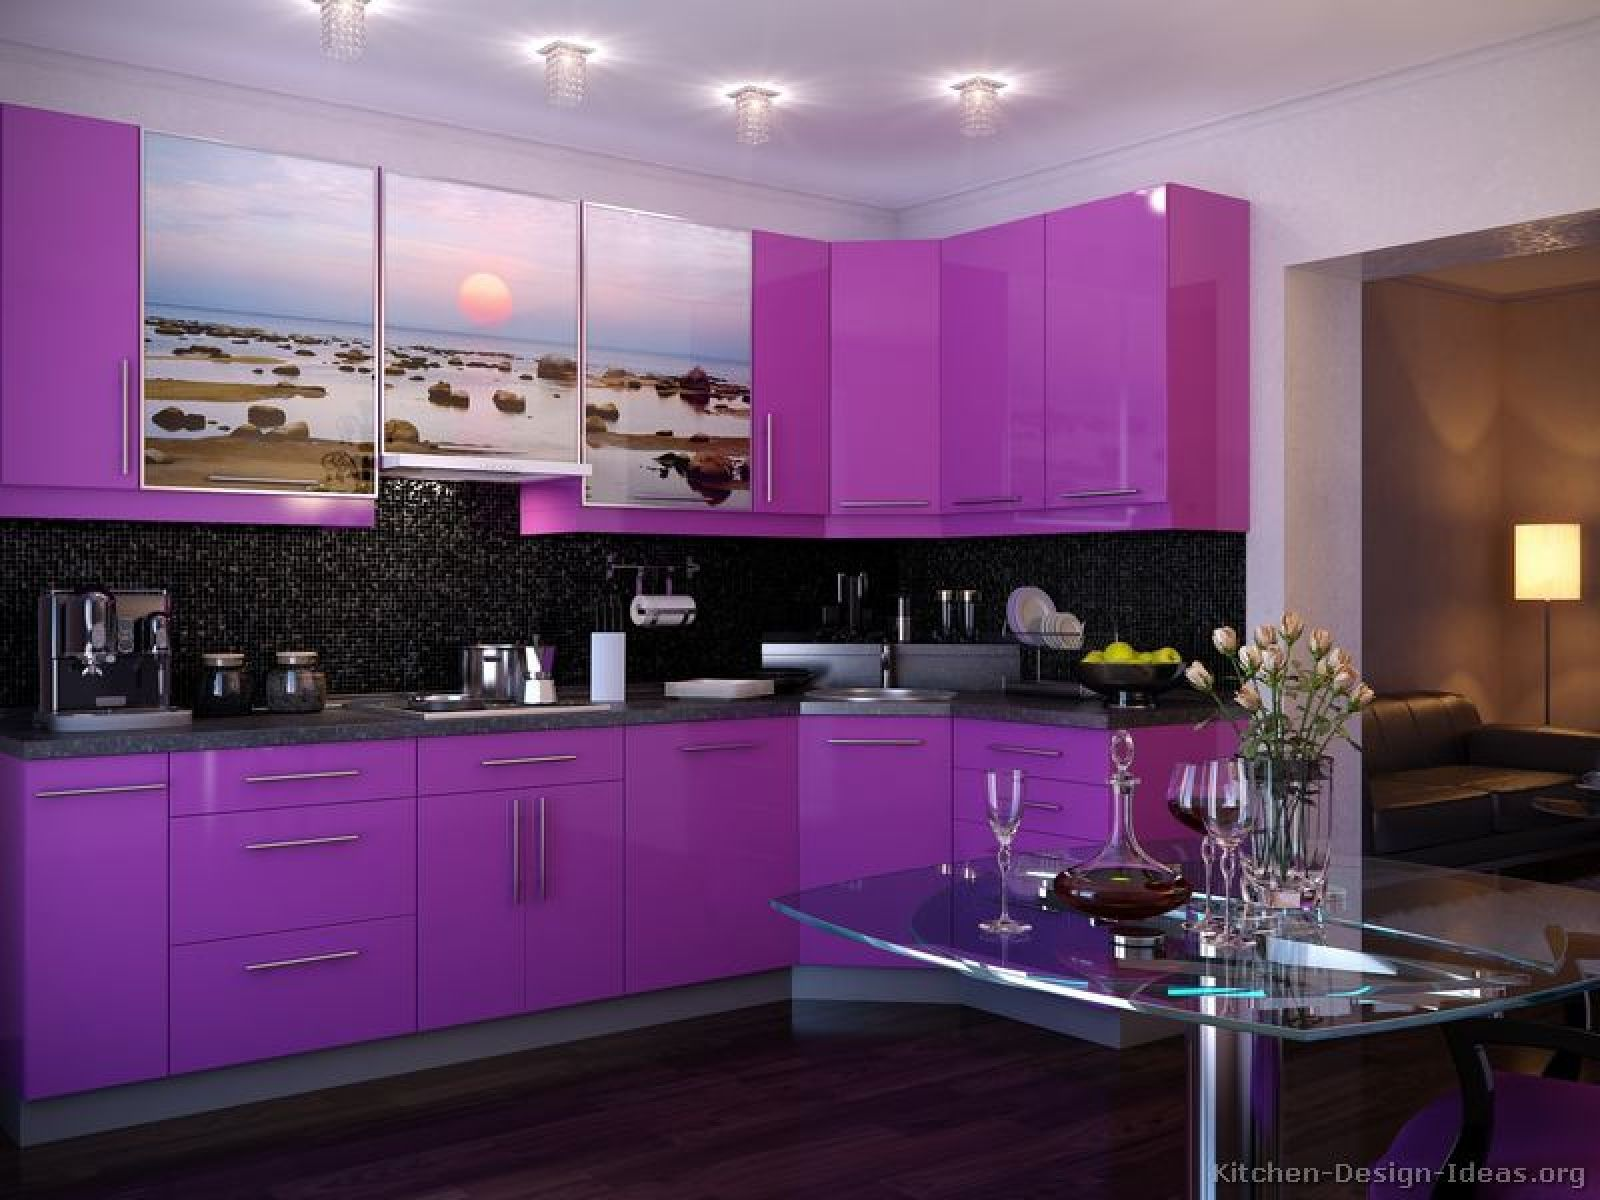 of dunelm large kitchen orchid aubergine floral white ideas appliances fashionable australia facing purple utensils small table accessories mill with red cabinets size dining